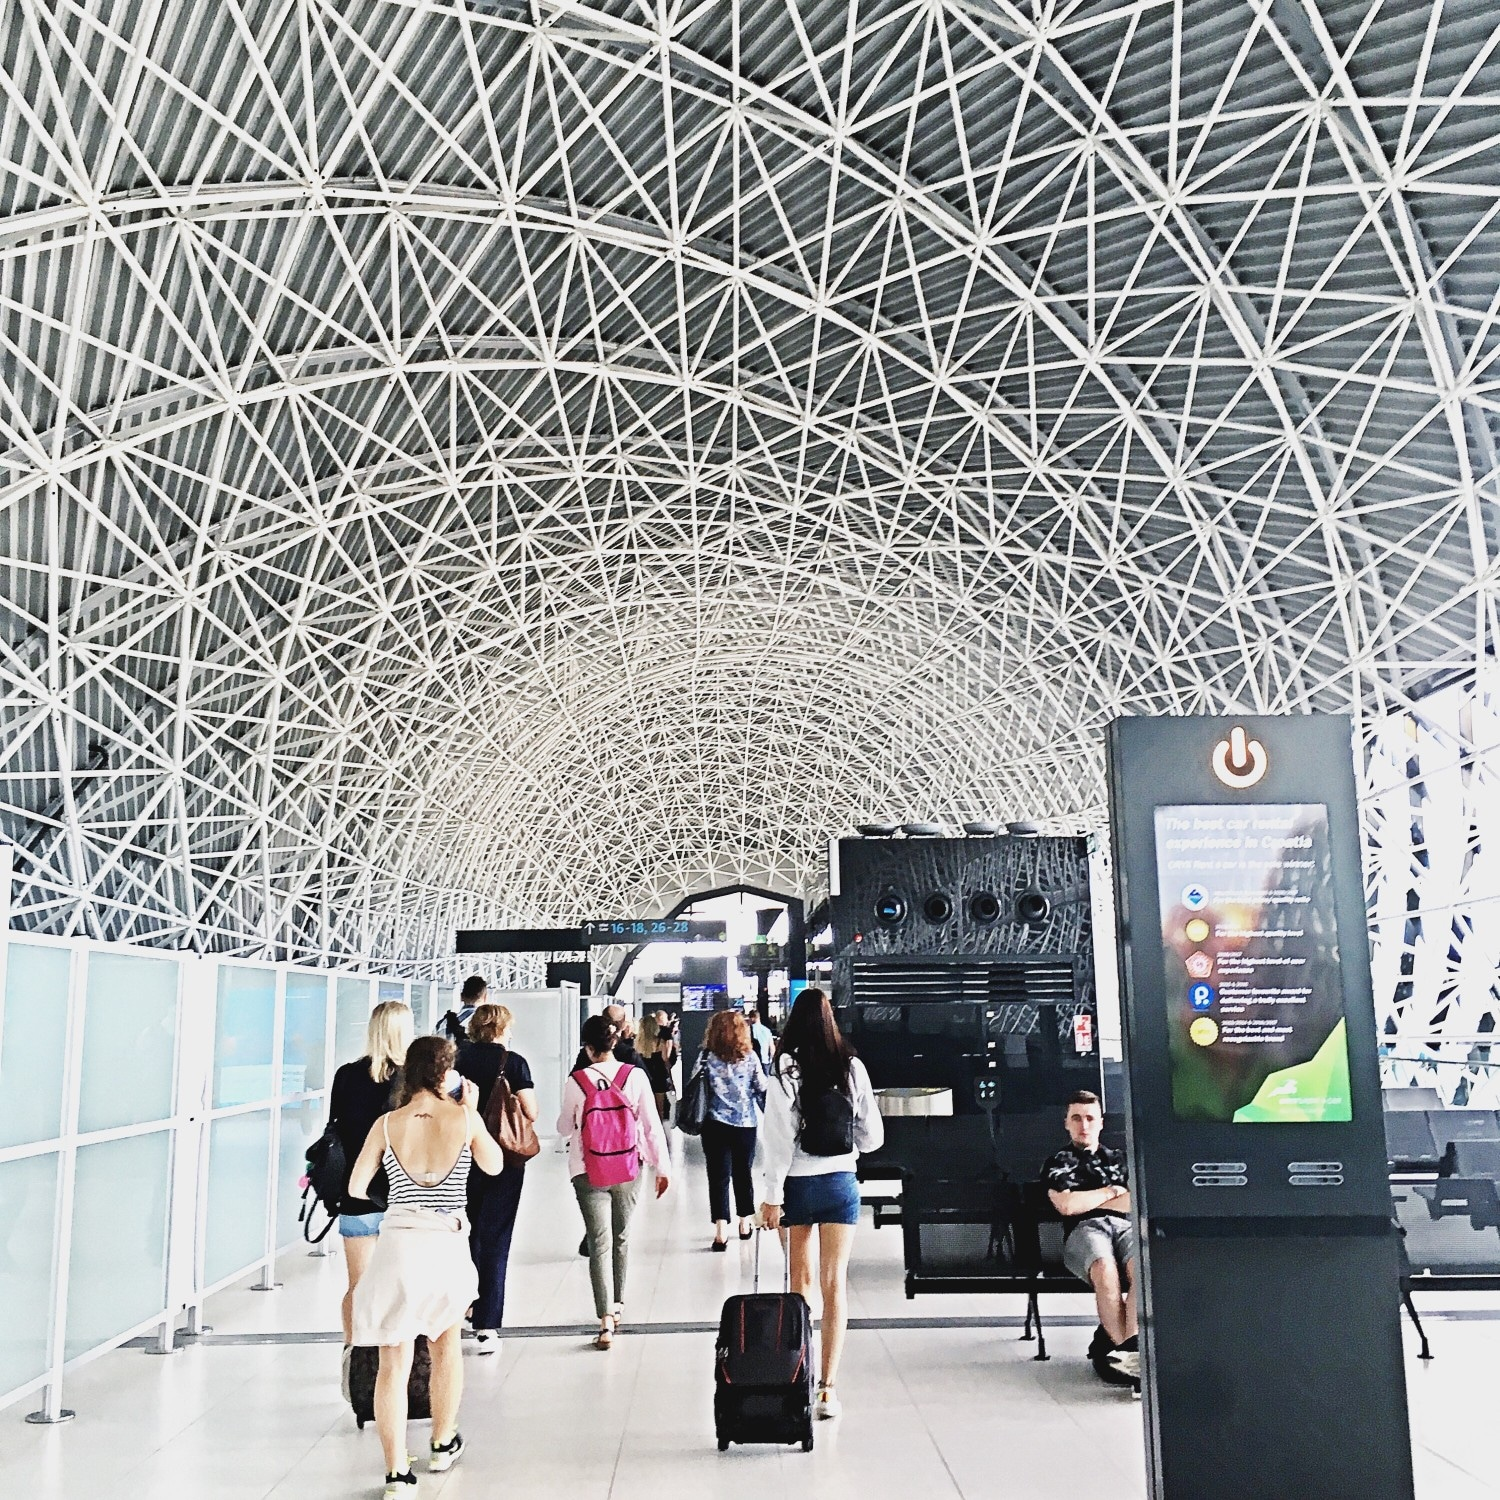 Awesome Reasons to Go to Zagreb - Zagreb's New Airport. Read more.